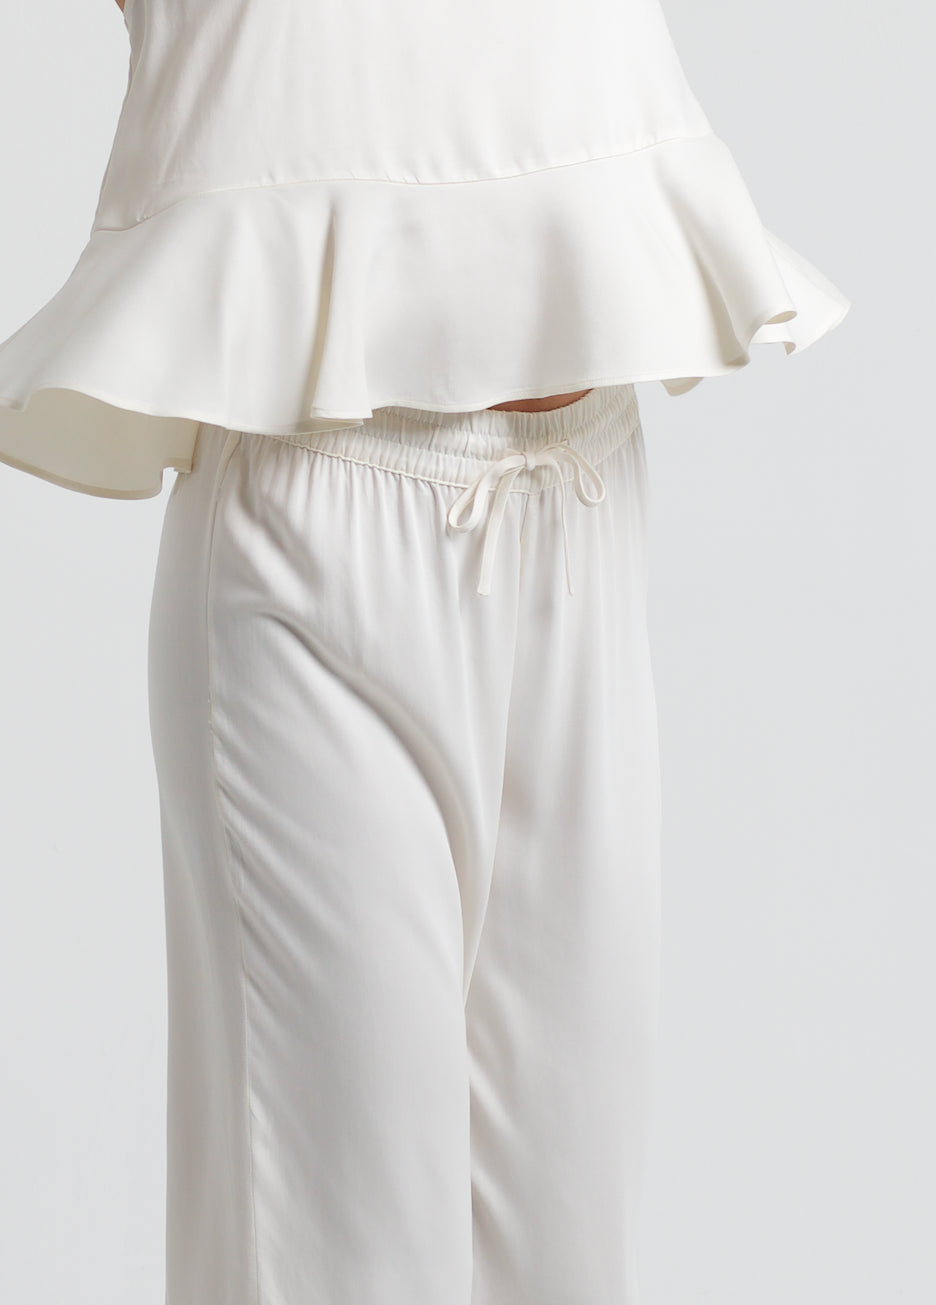 Double Ruffle Pant Set - Cloud